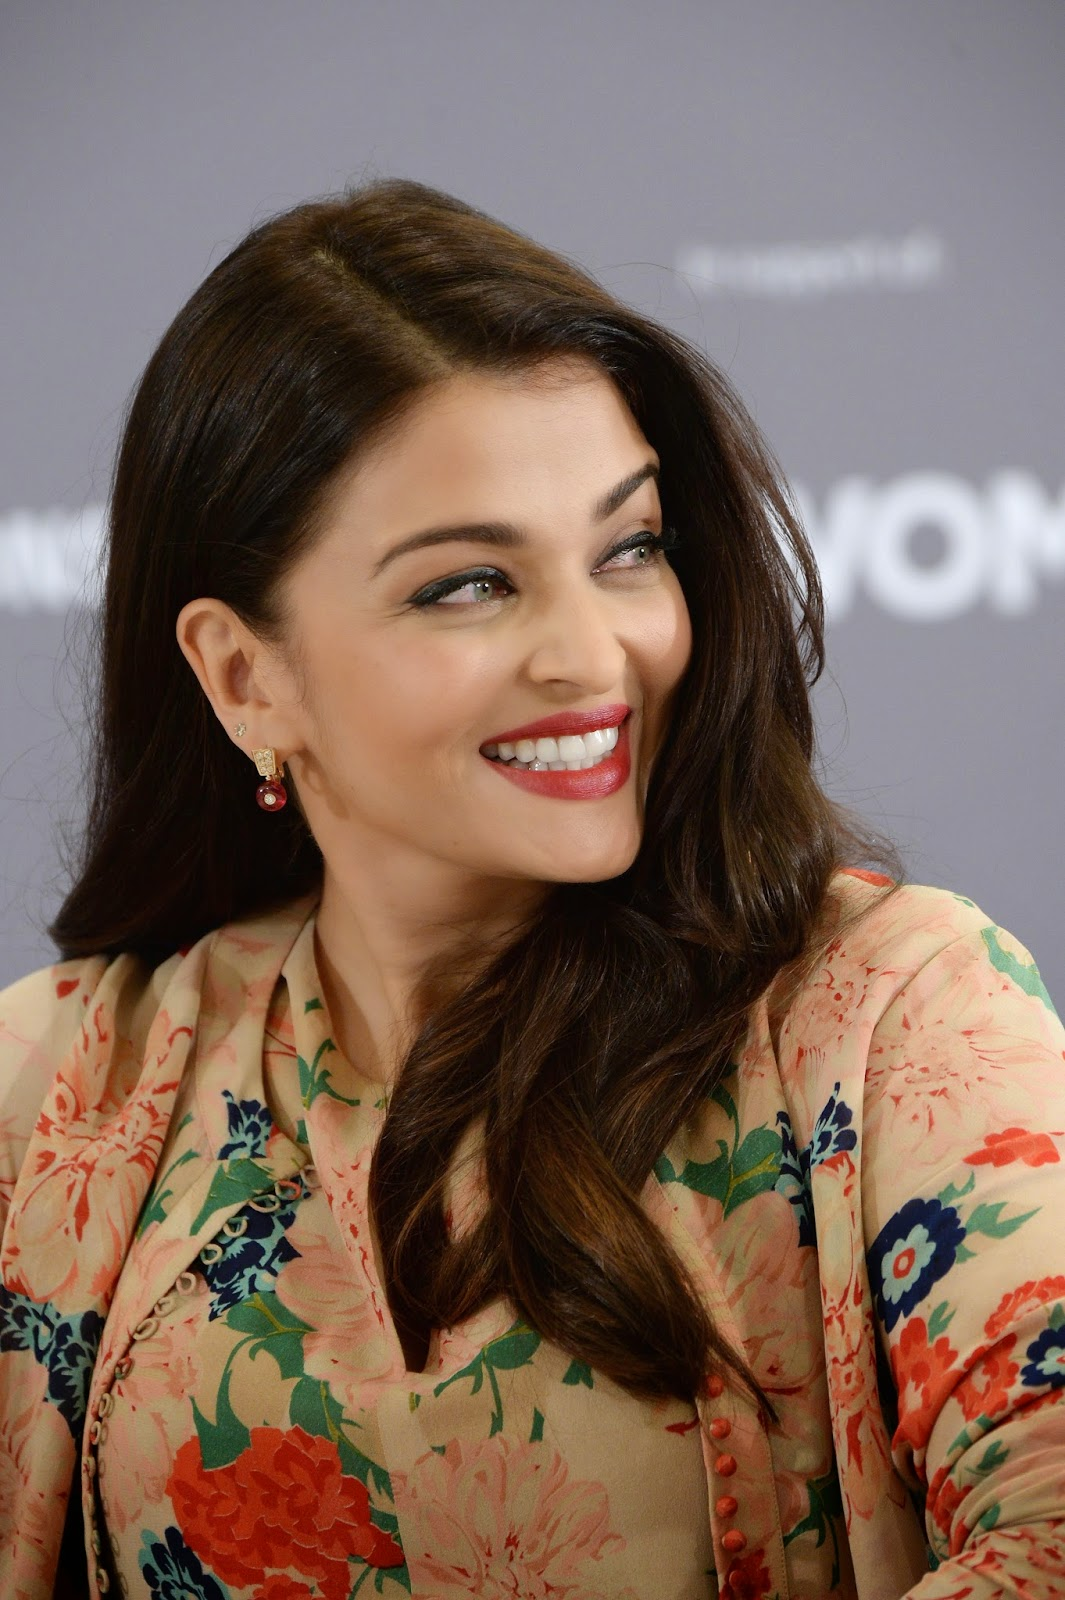 Aishwarya Rai at The Variety Celebration Of UN Women At Radisson Blu In Cannes-France